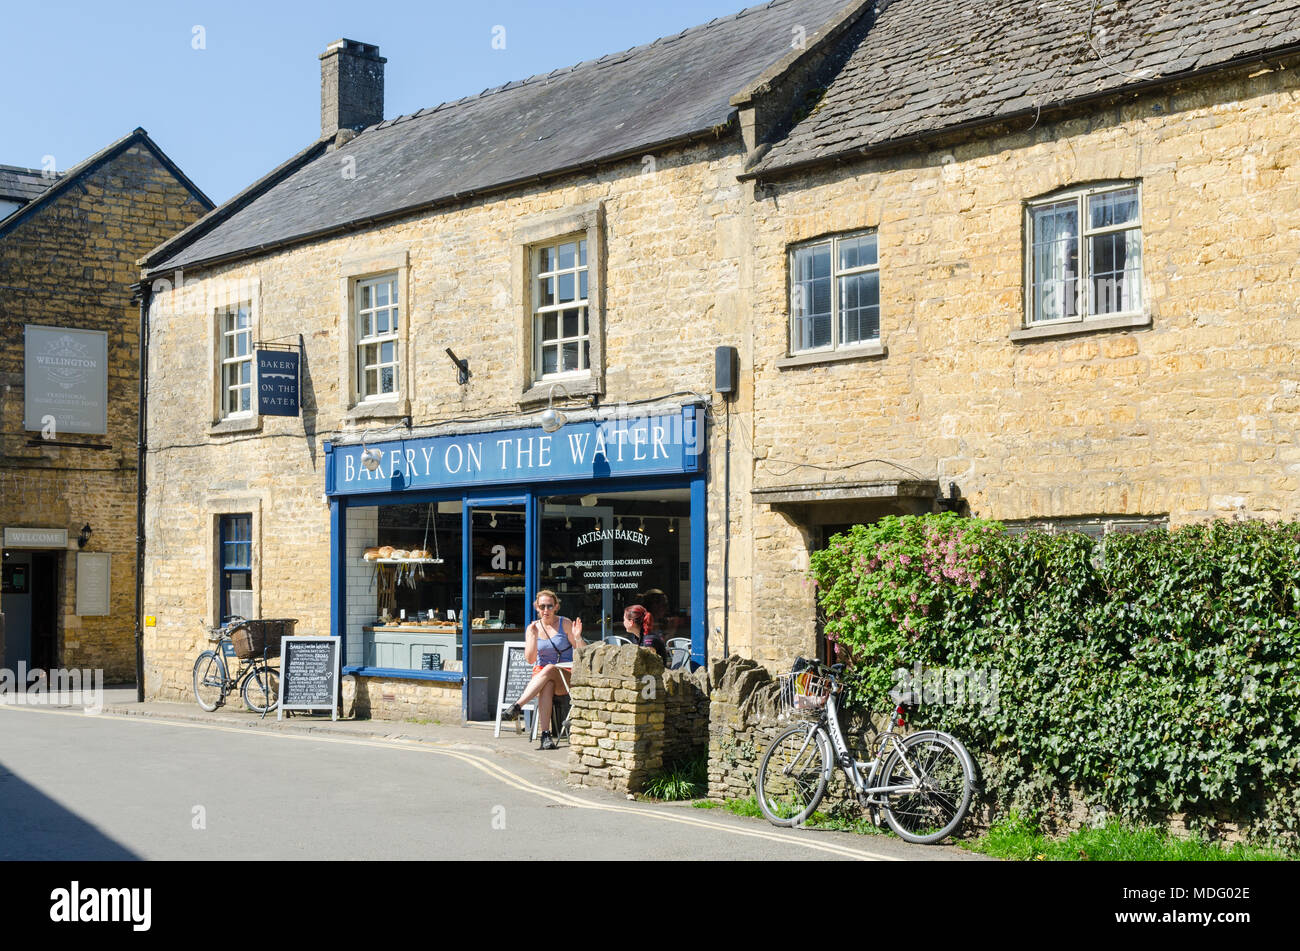 Bakery on the Water artisan bakery in the popular Cotswold village of Bourton-on-the-Water, Gloucestershire in spring sunshine - Stock Image